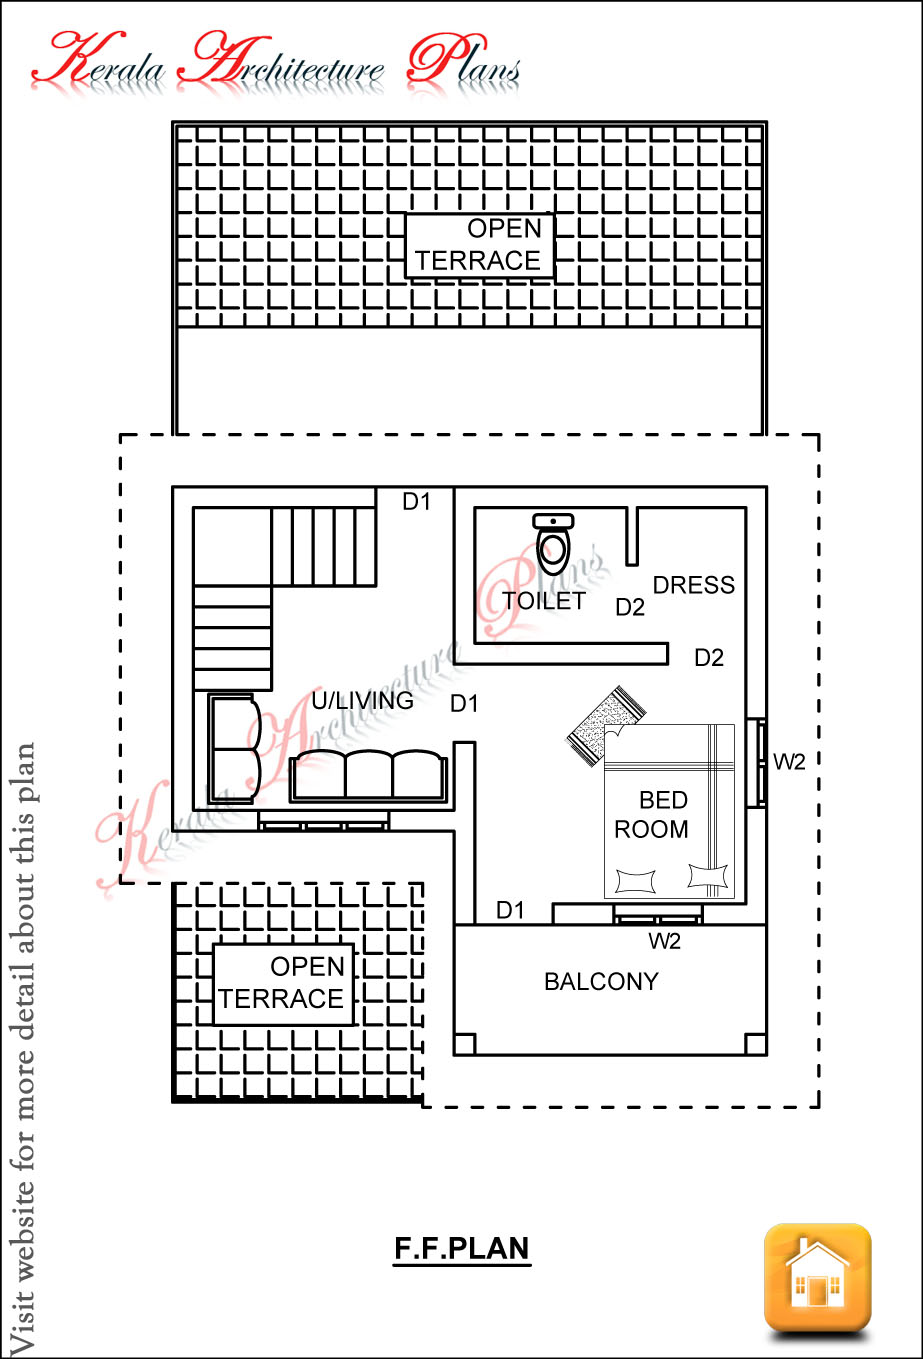 3 bedroom house plan in 1200 square feet architecture kerala for 3 bedroom house in kerala